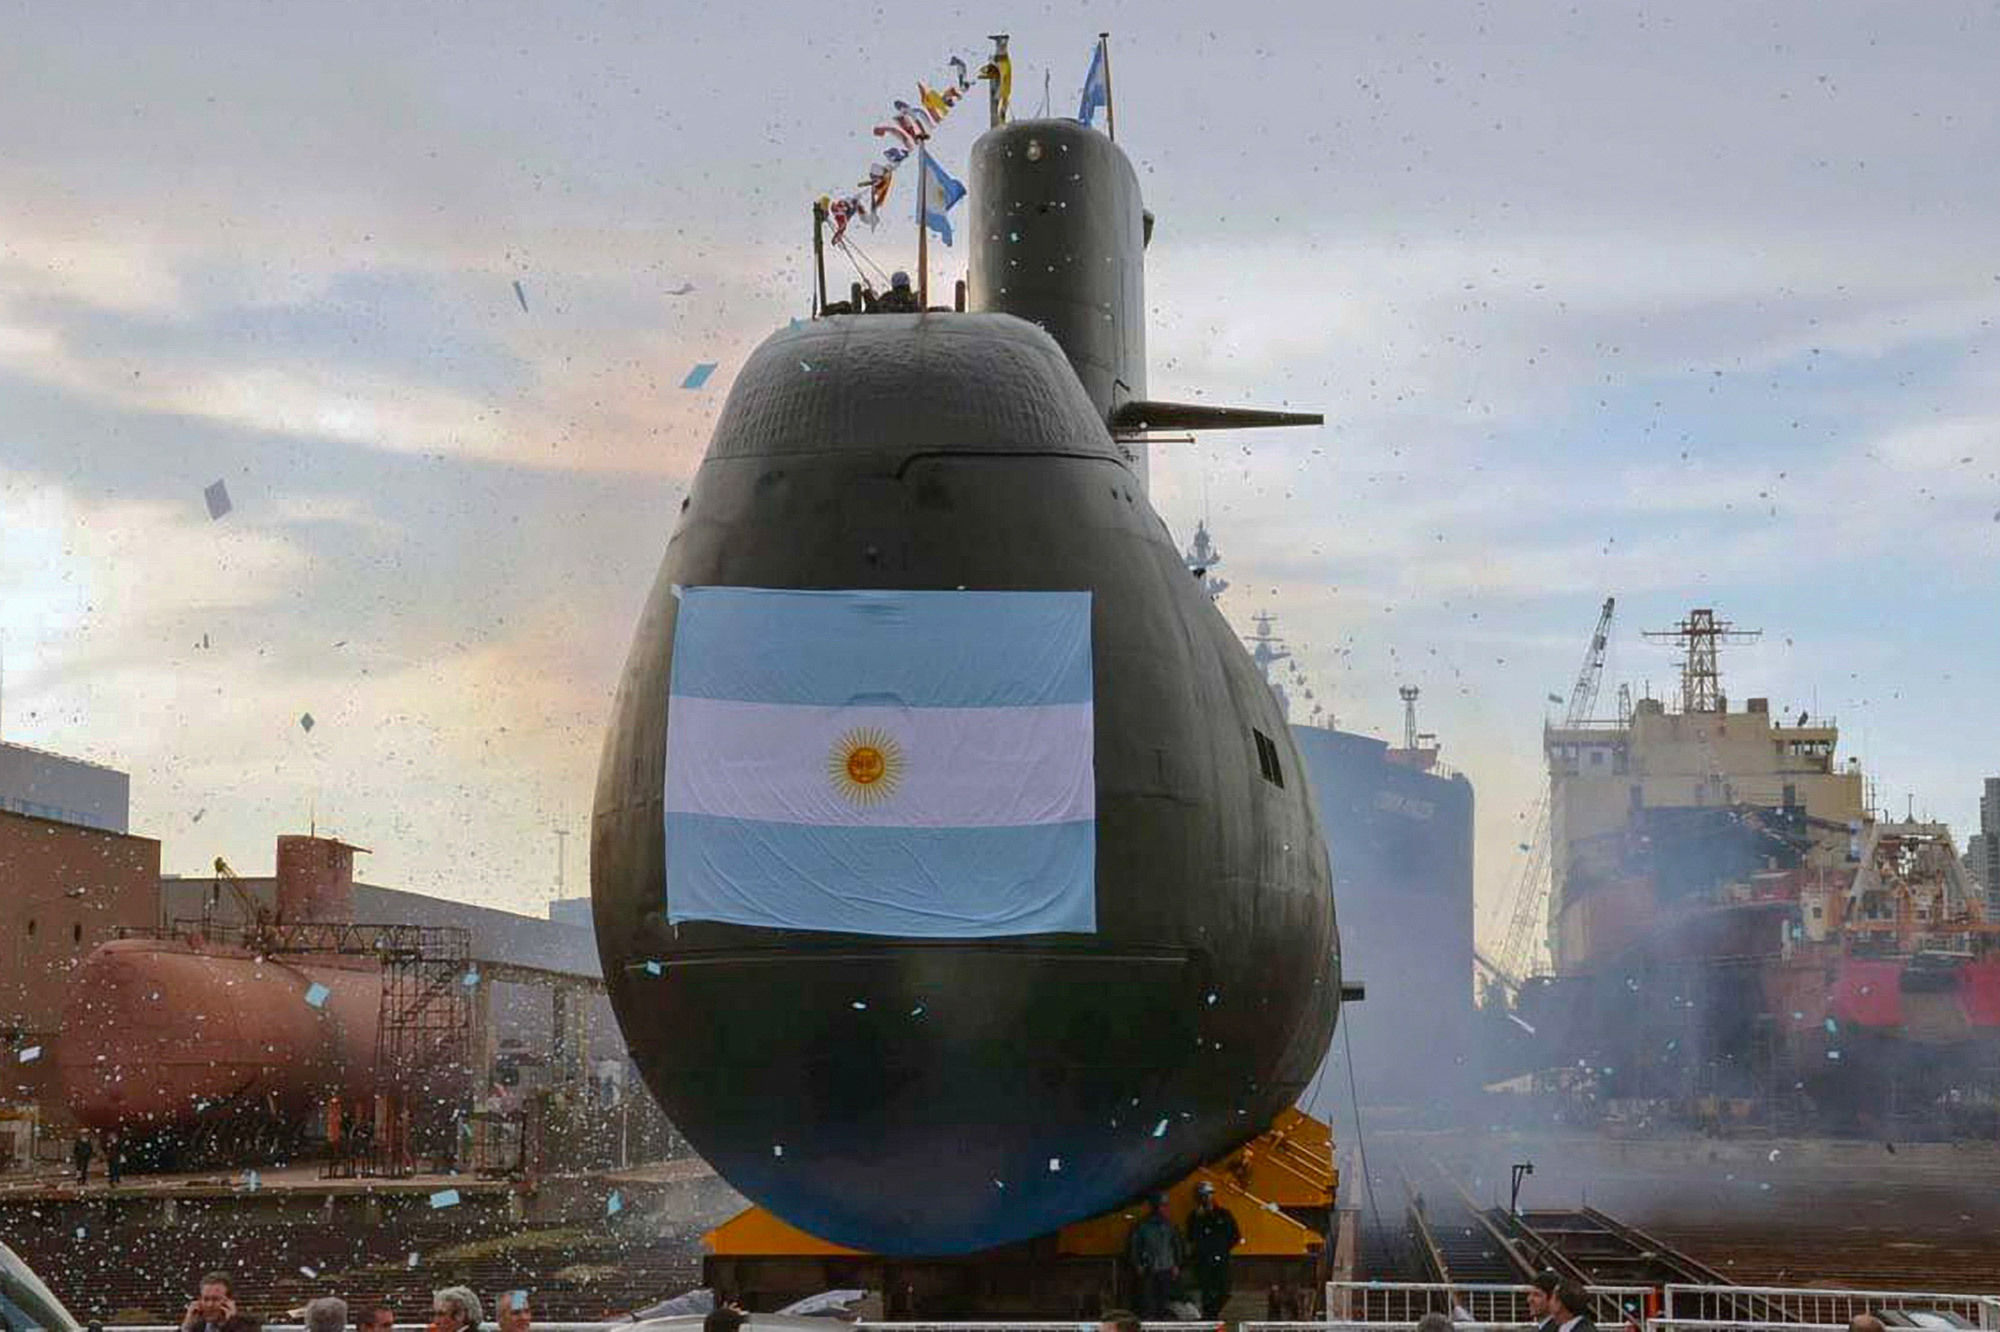 Argentine submarine found year after disappearance: official